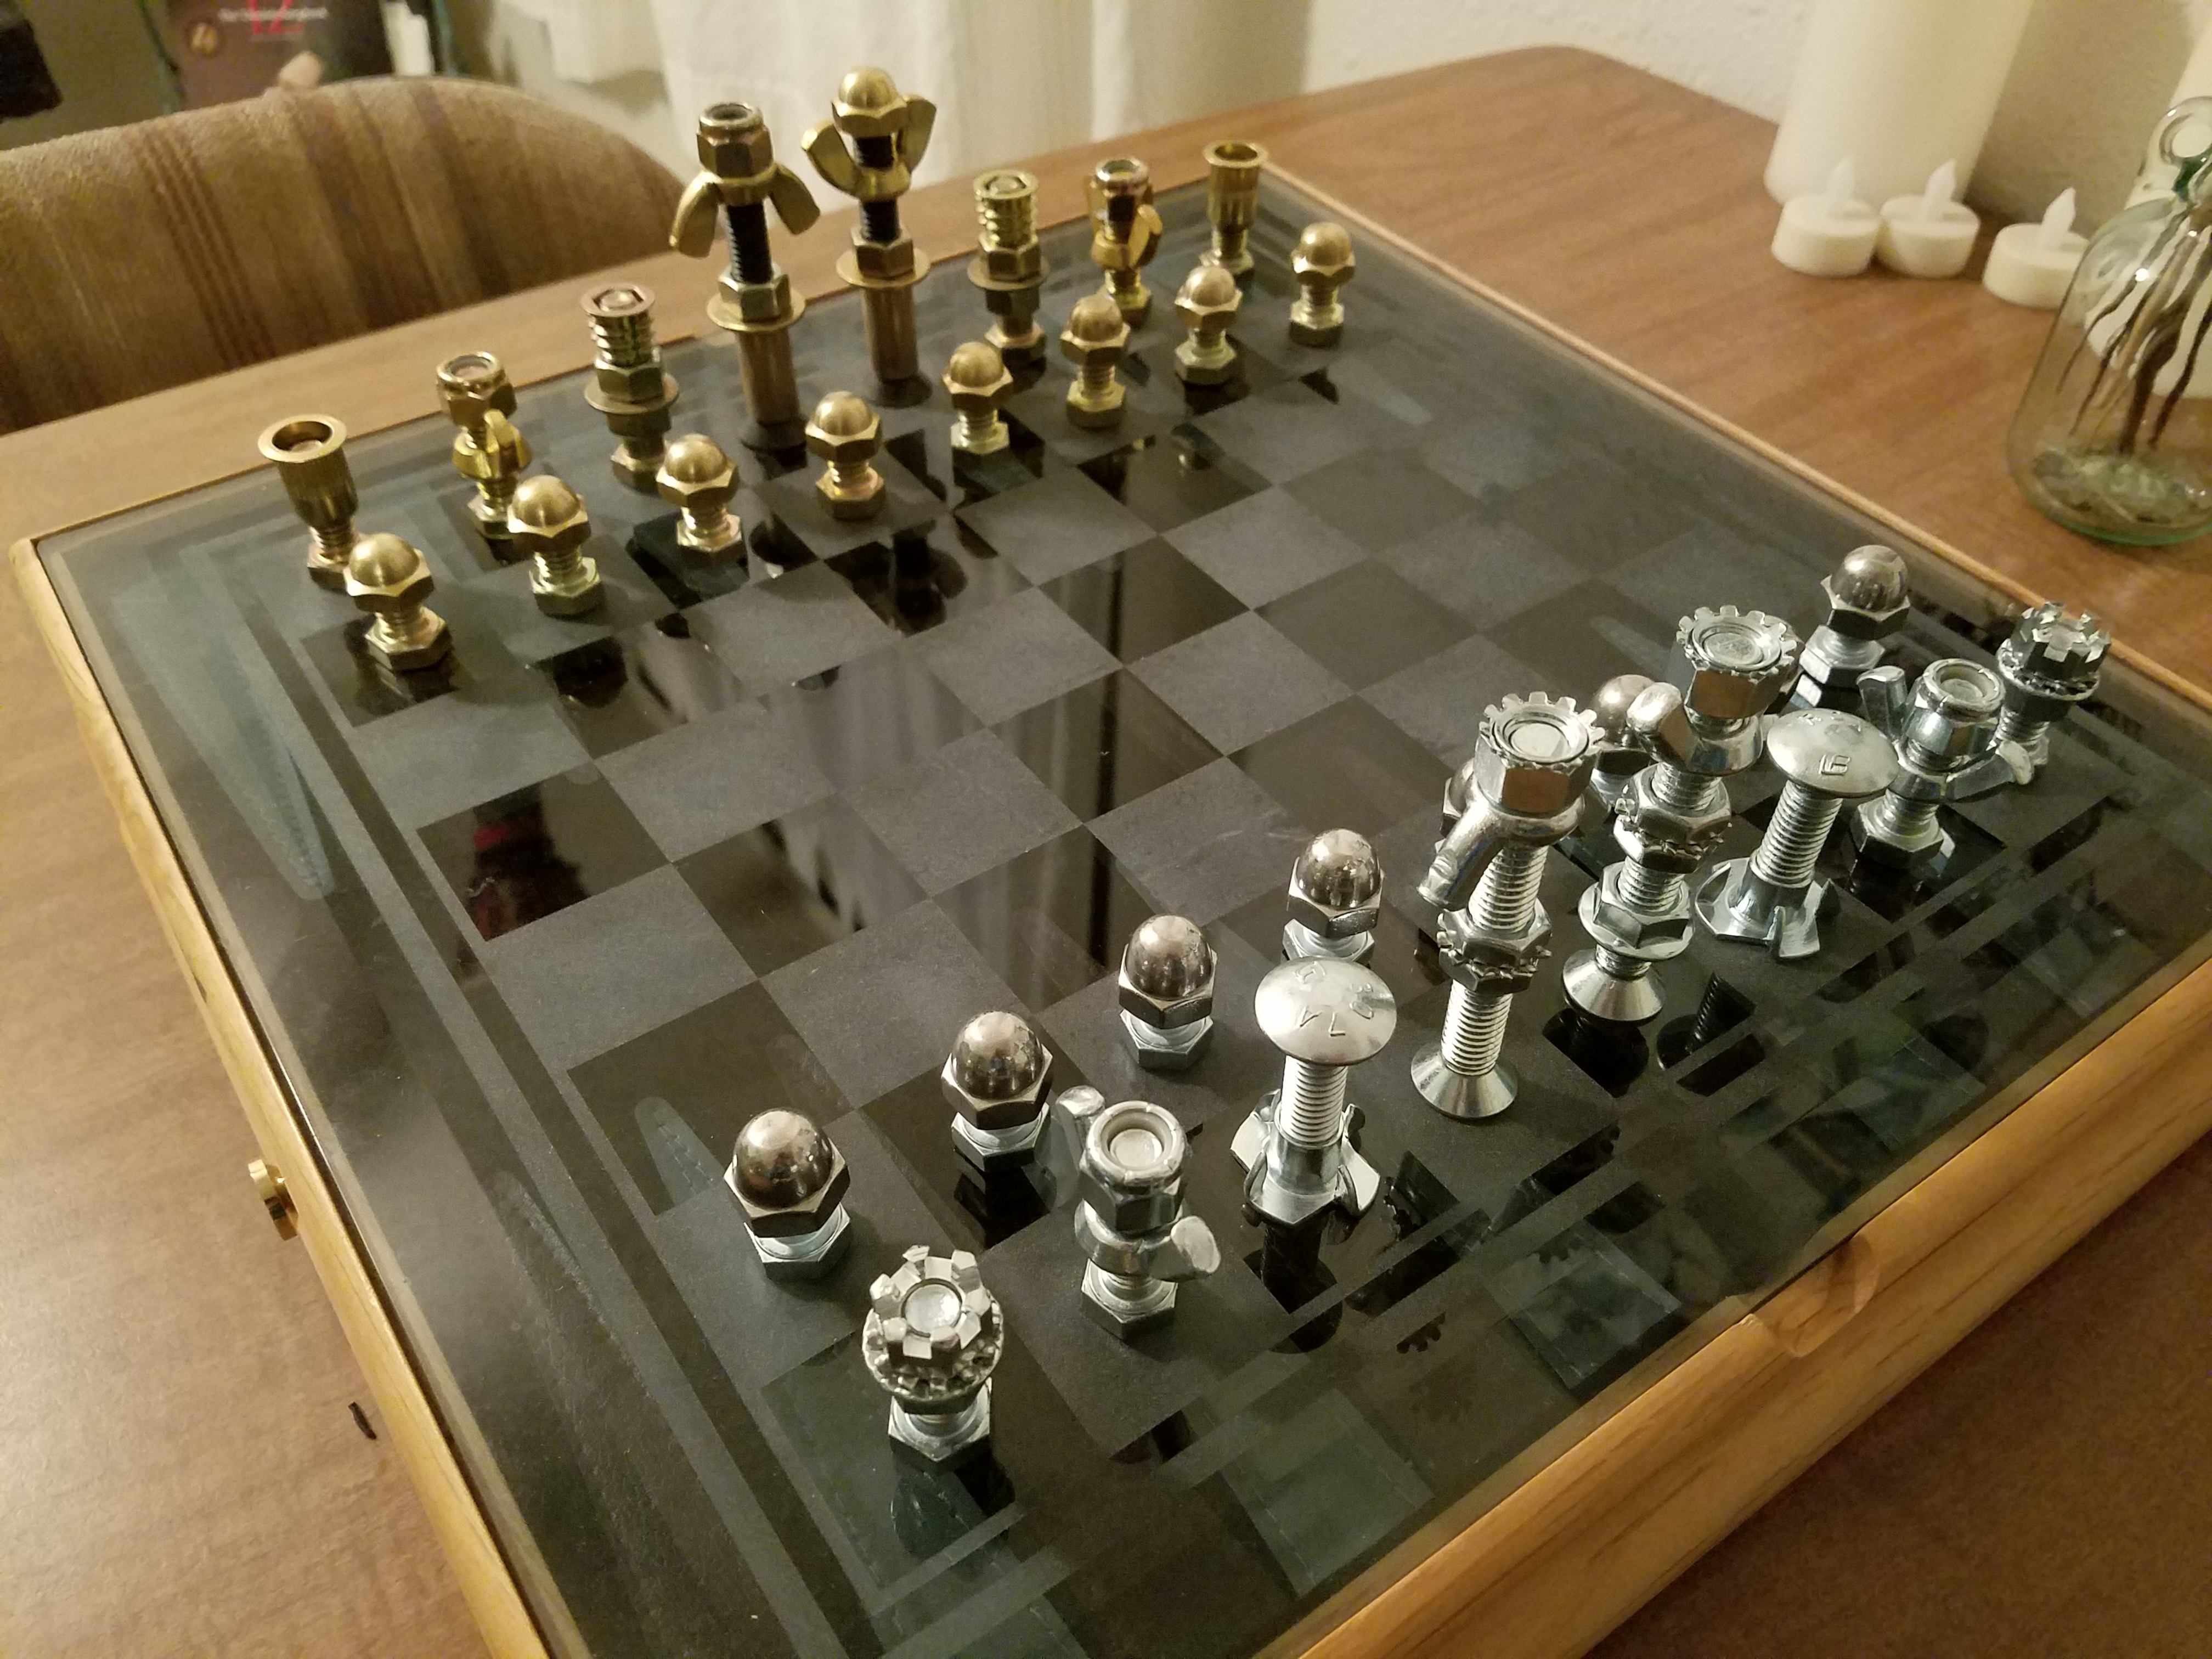 DIY Chess Set With Fasteners